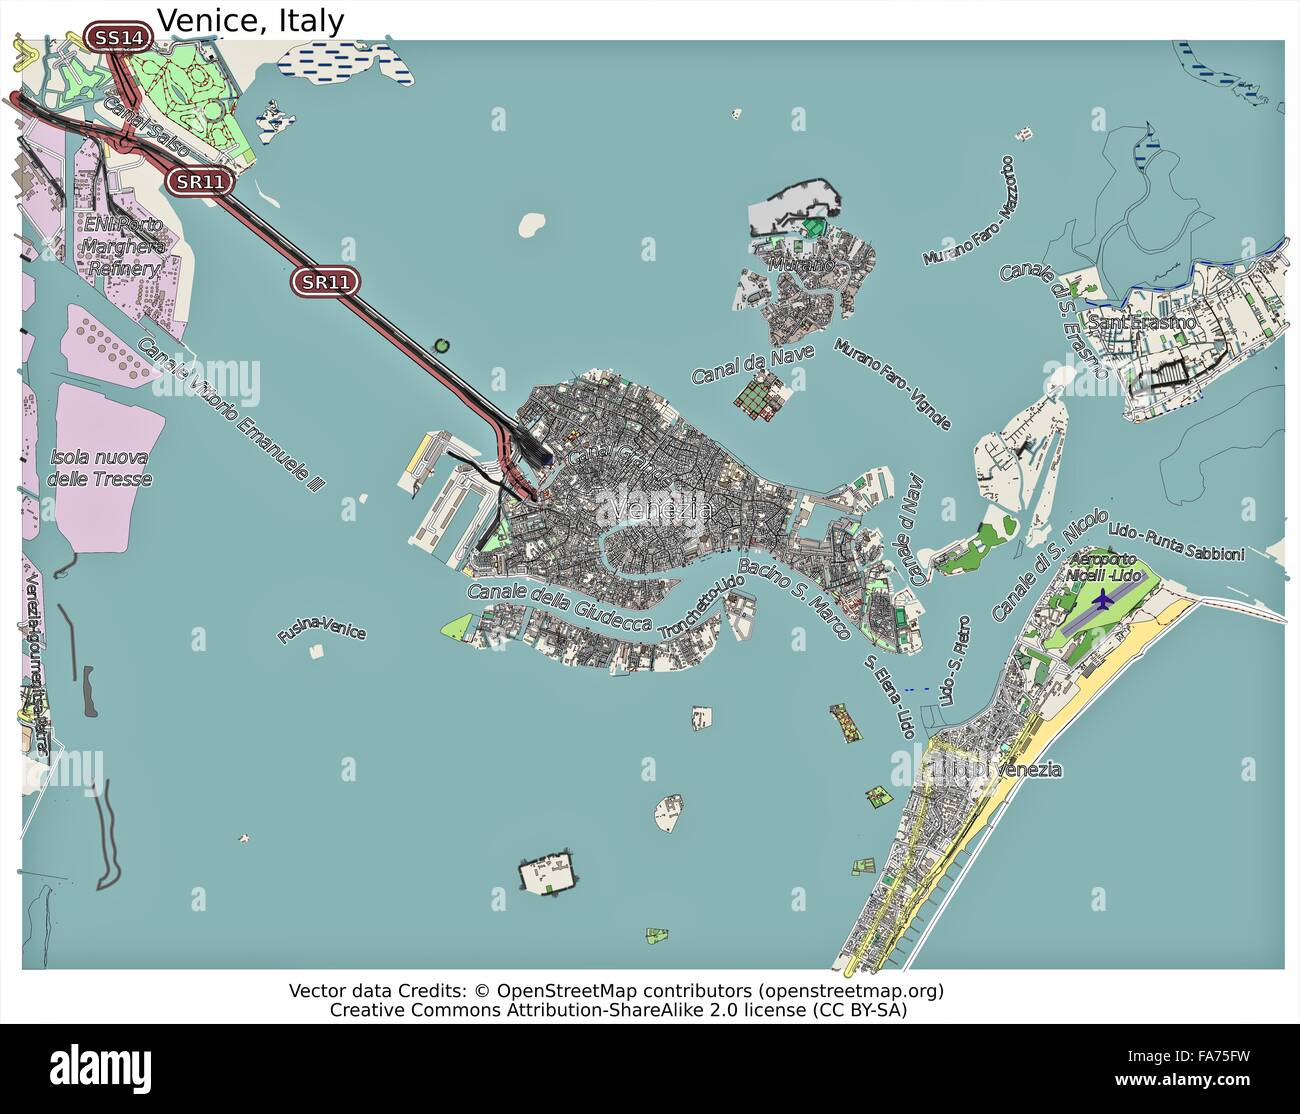 Venice Italy location map Stock Photo Royalty Free Image 92356429